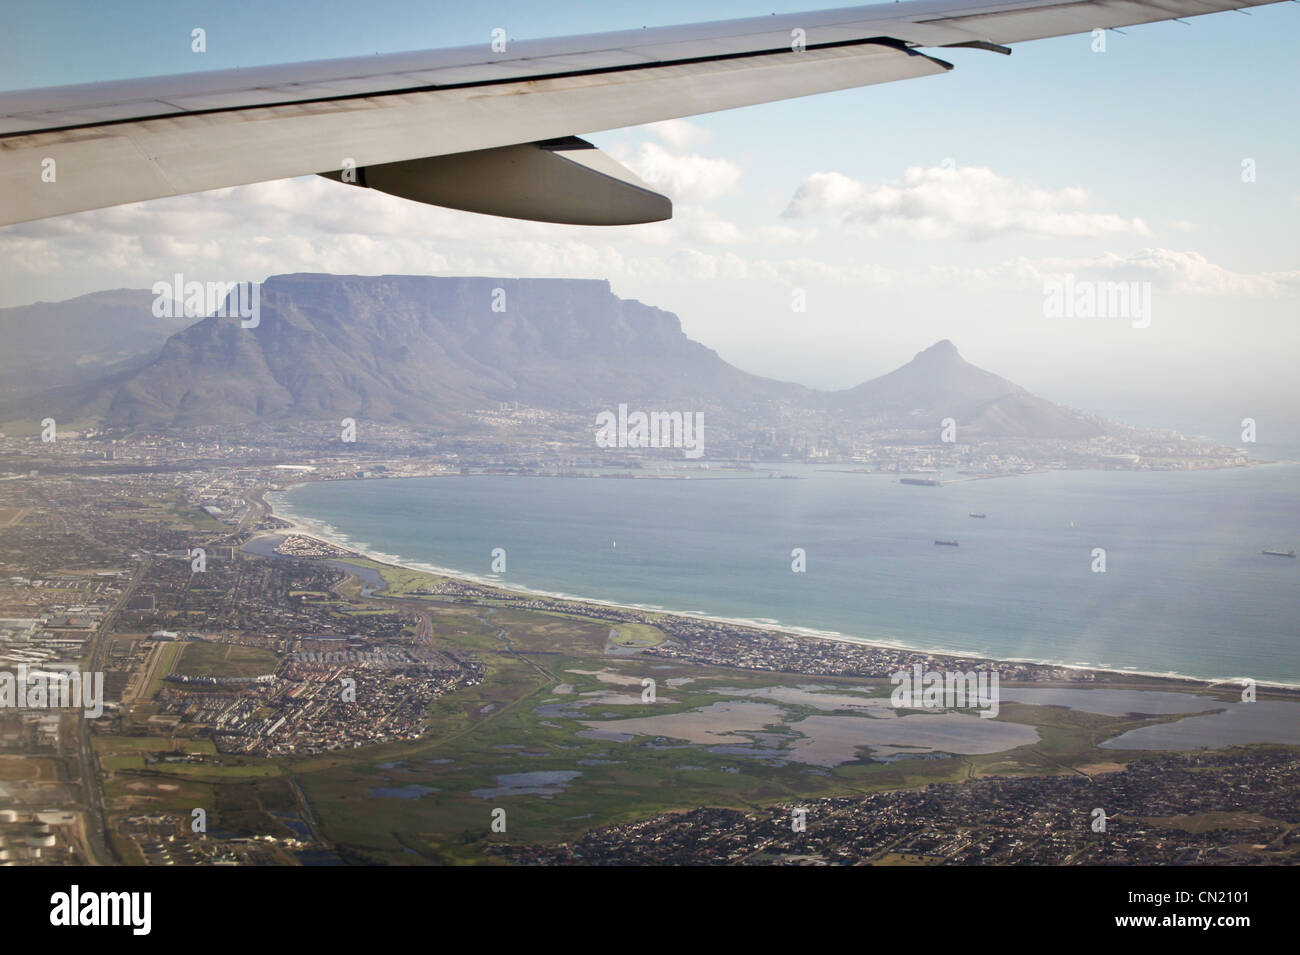 View from airplane window of Cape Town, South Africa - Stock Image